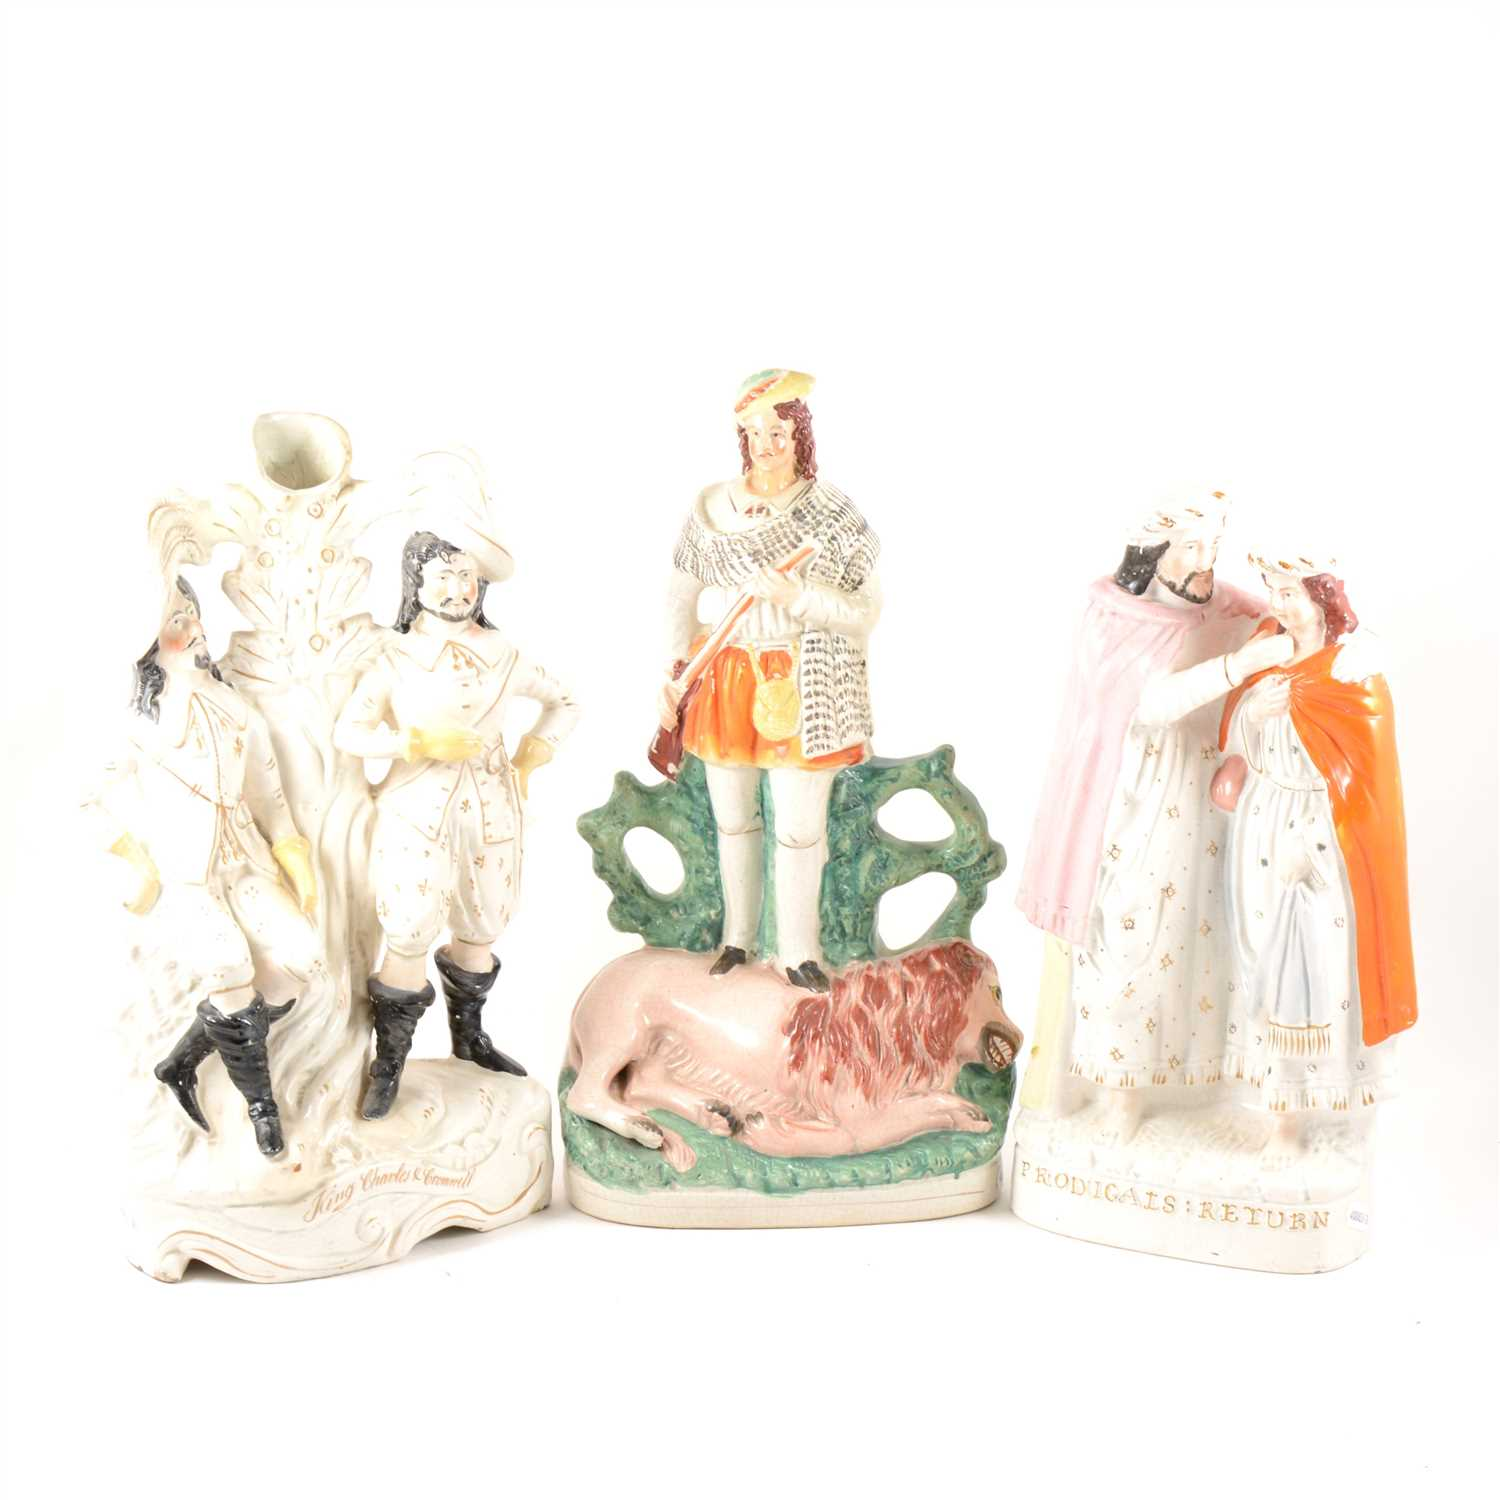 Lot 34-A Staffordshire group, Prodigals Return, and six other Staffordshire figures.